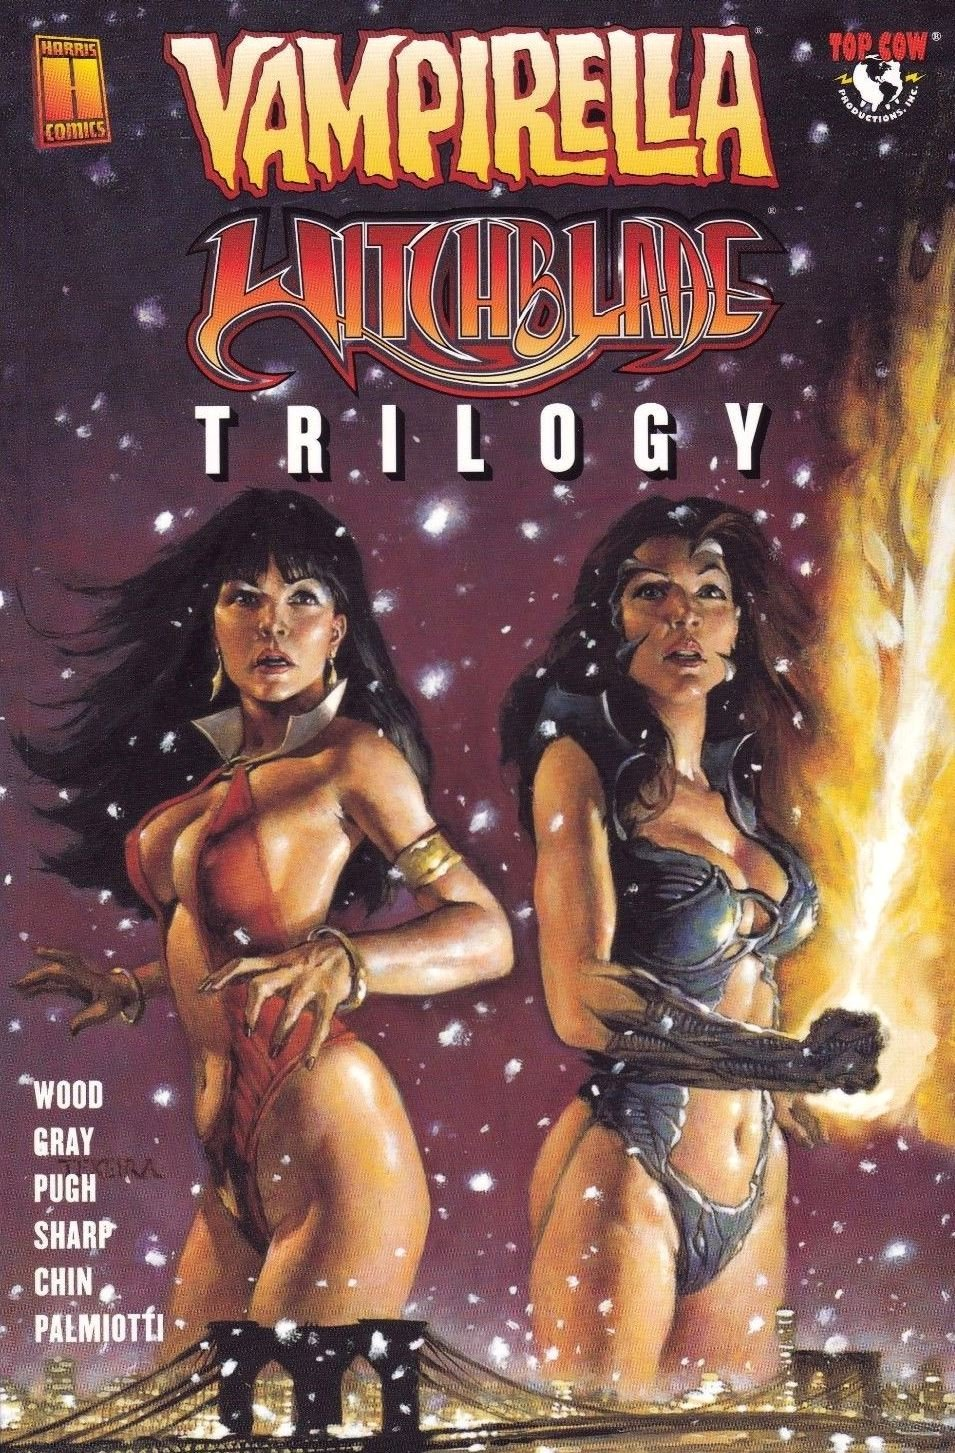 Vampirella Witchblade Union of the Damned 1 Convention Edition Harris Comics